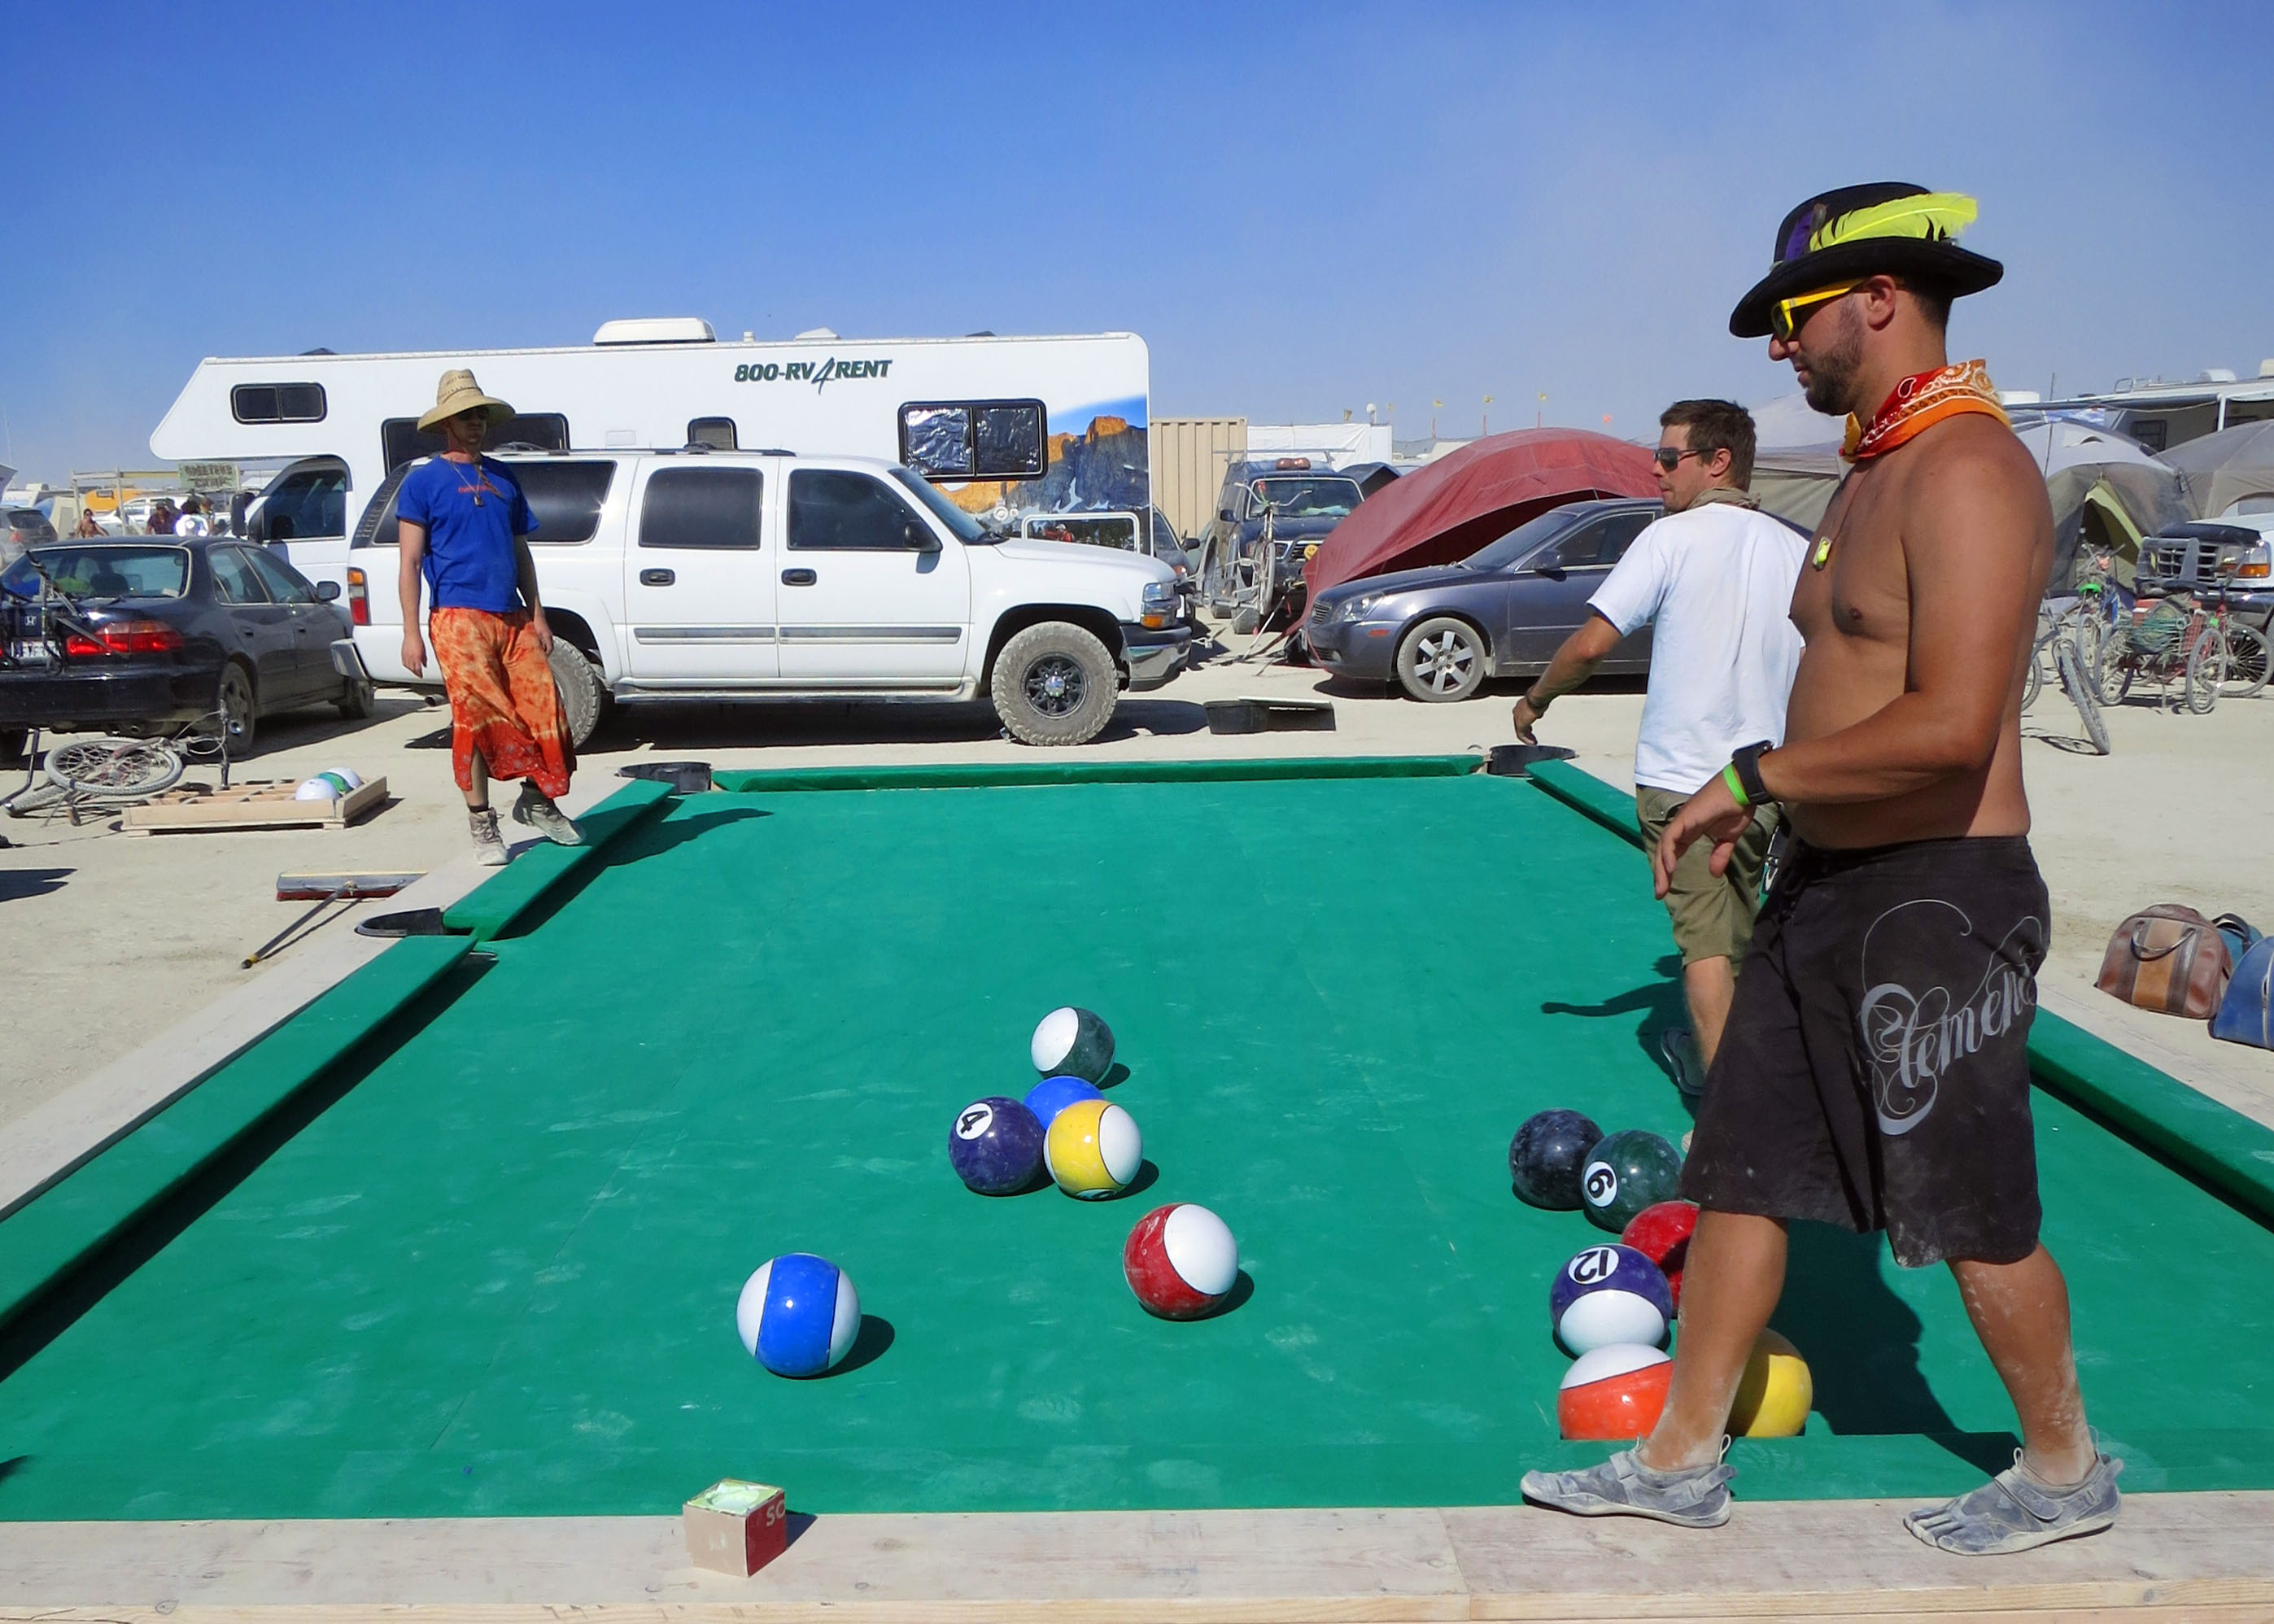 Setting Up A Pool Table The Art Of Gifting Burning Man 2012 Wandering Through Time And